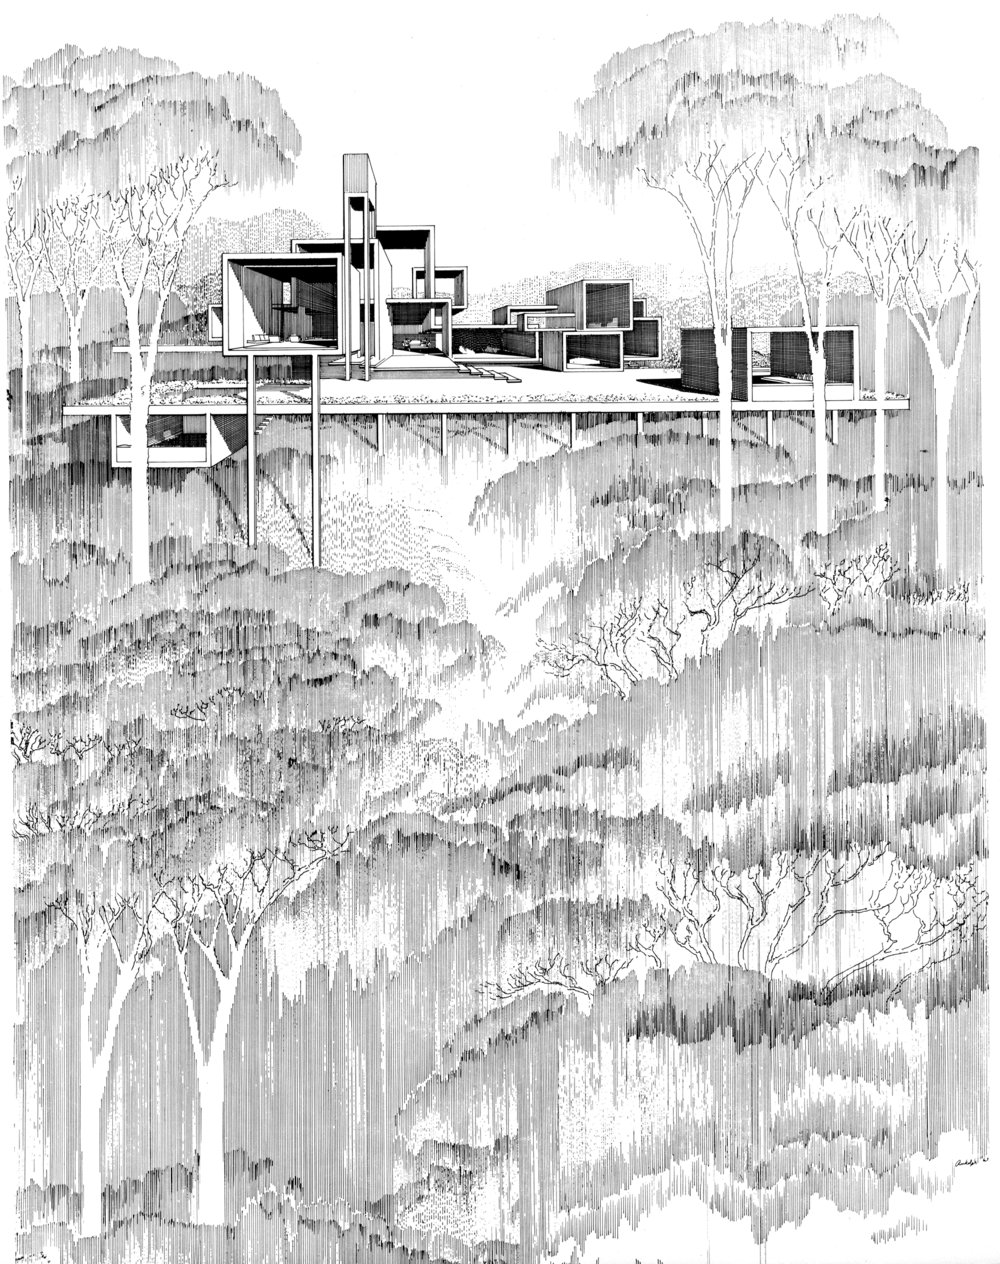 Callahan Residence project, Birmingham, AL, 1965. Image: Paul Rudolph Heritage Foundation Archives